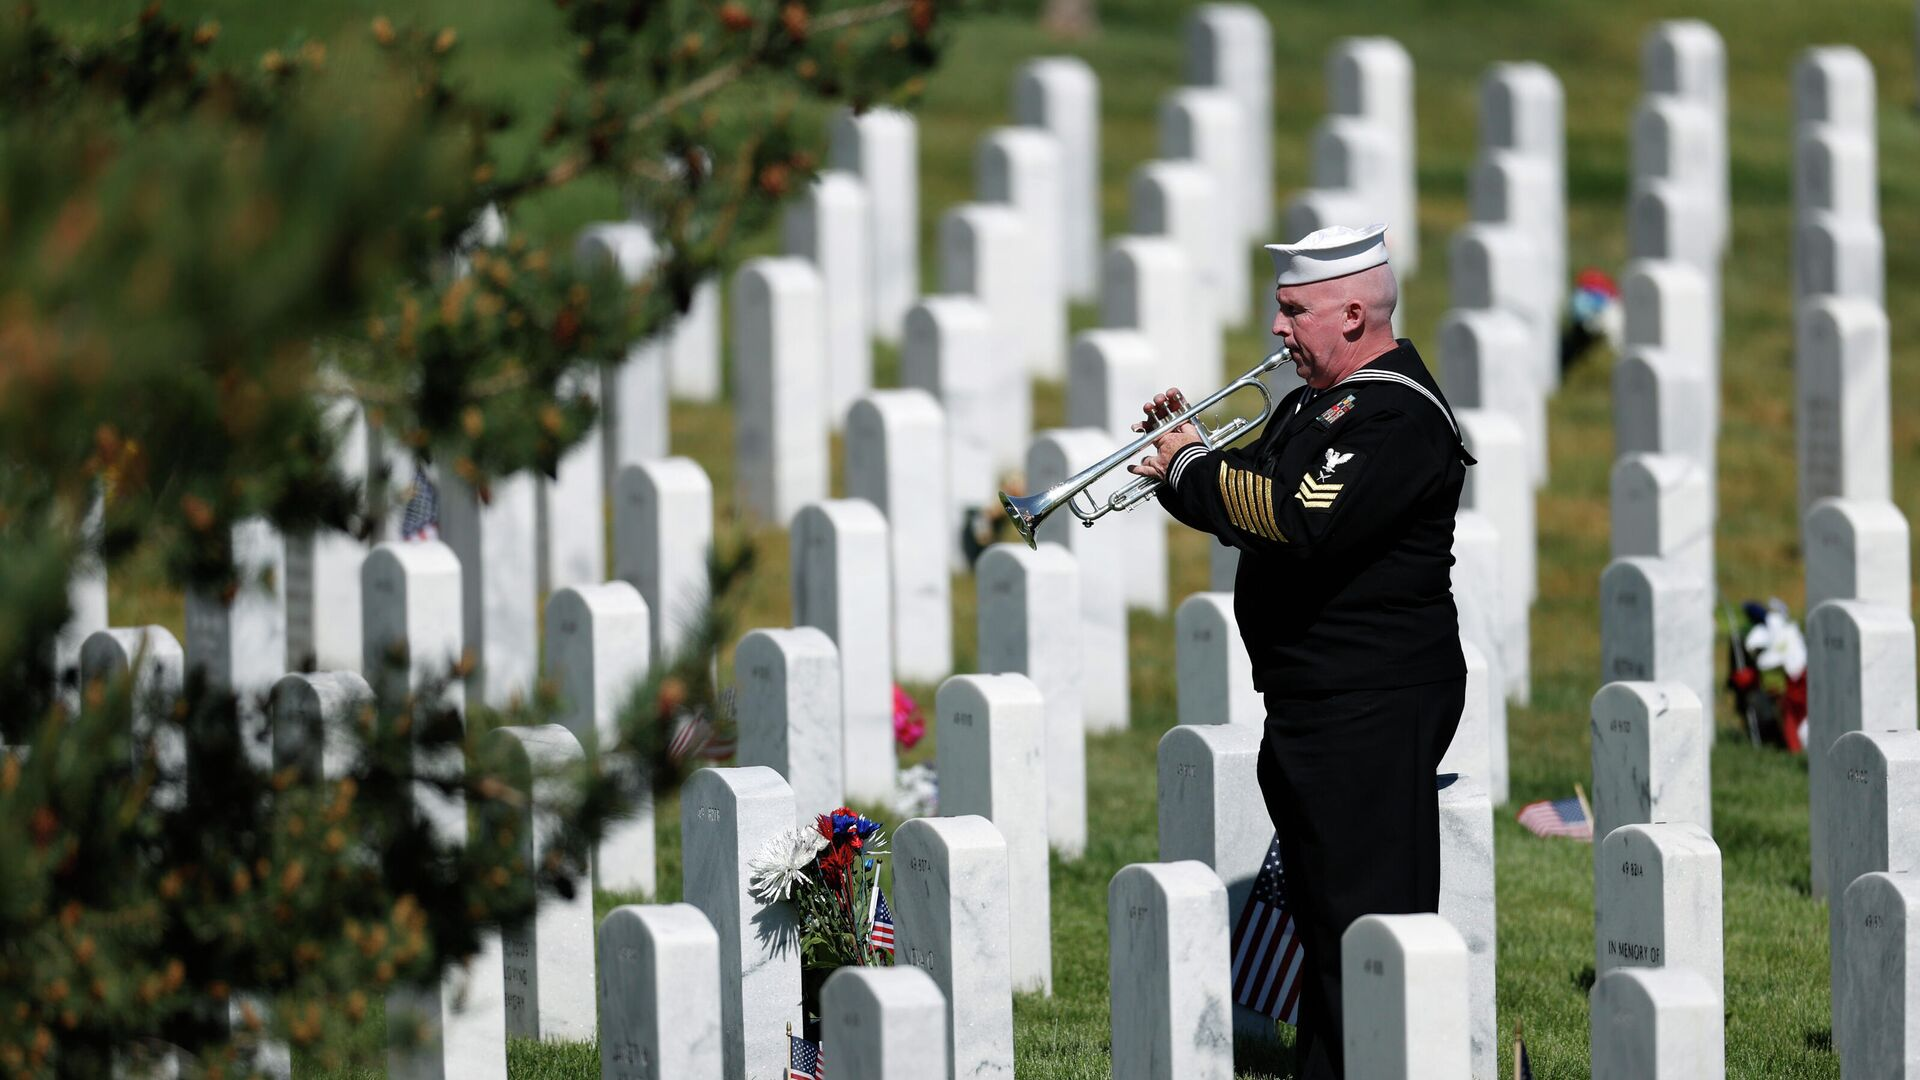 Retired U.S. Navy Yeoman First Class Mark Stallins plays Taps for Memorial Day at a gravesite in Fort Logan National Cemetery Monday, May 25, 2020, in Sheridan, Colo. - Sputnik International, 1920, 14.10.2021